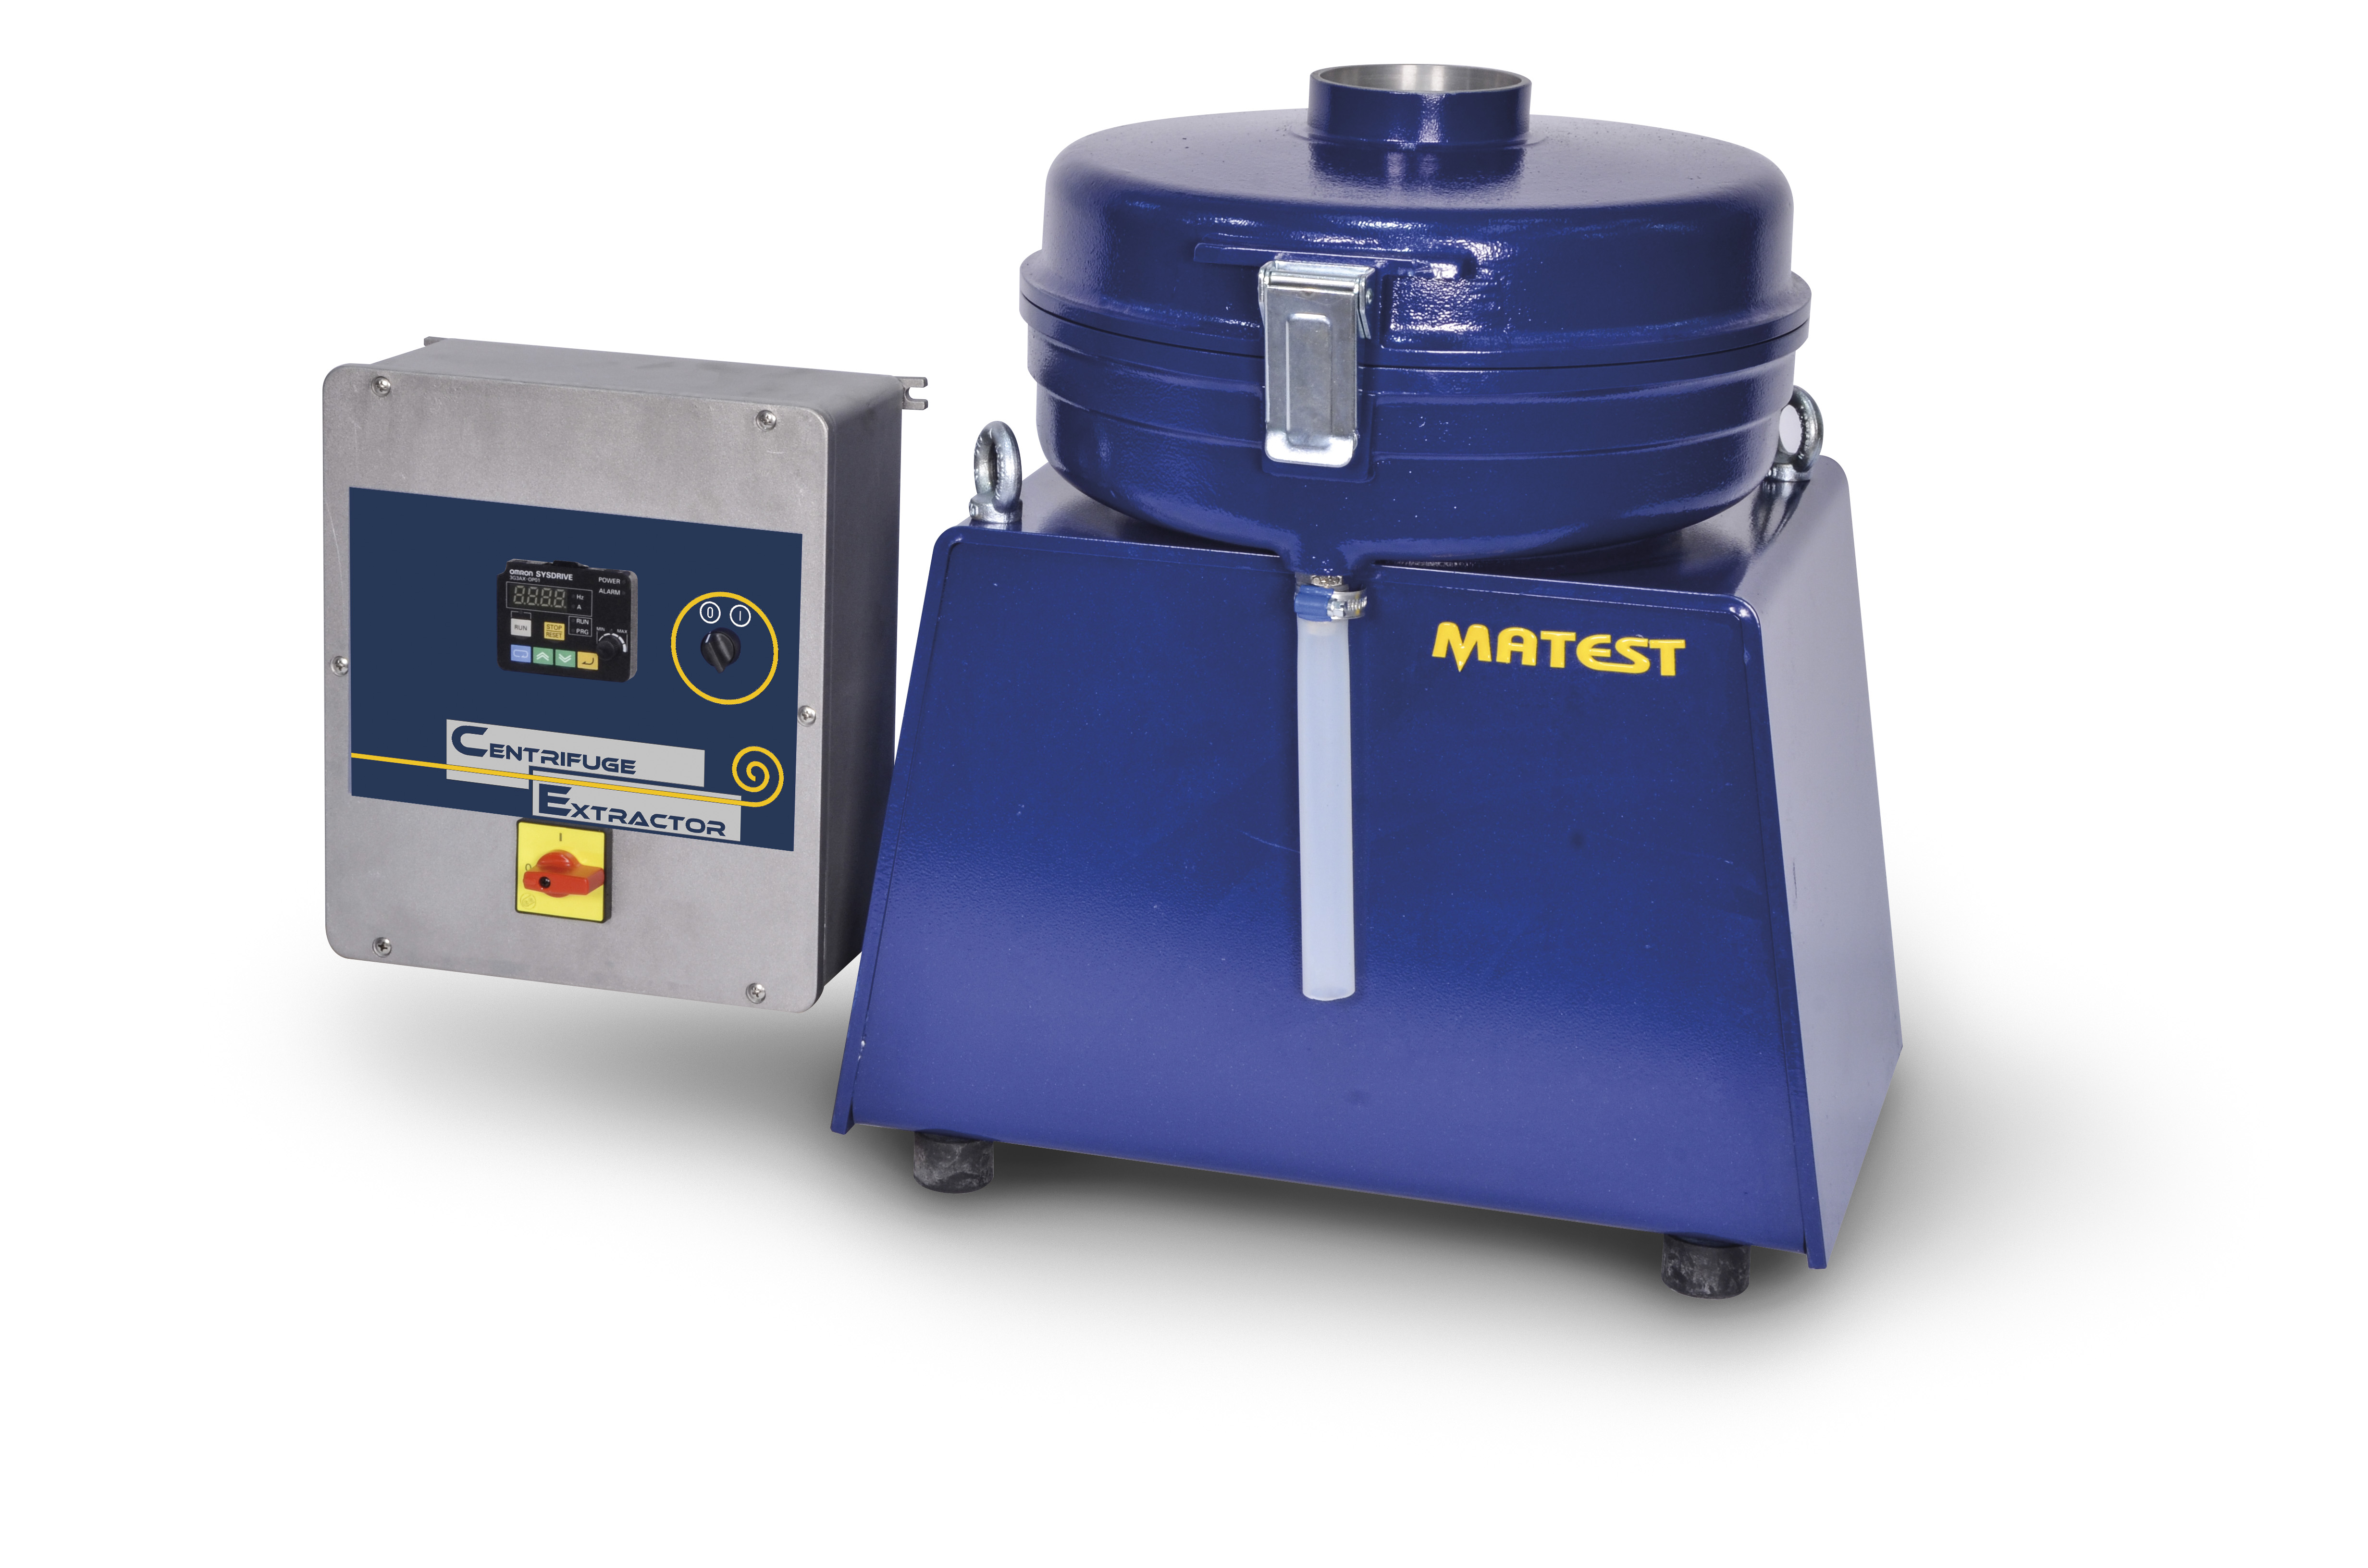 ROTAREX CENTRIFUGE EXTRACTOR 1500 / 3000 g CAPACITY